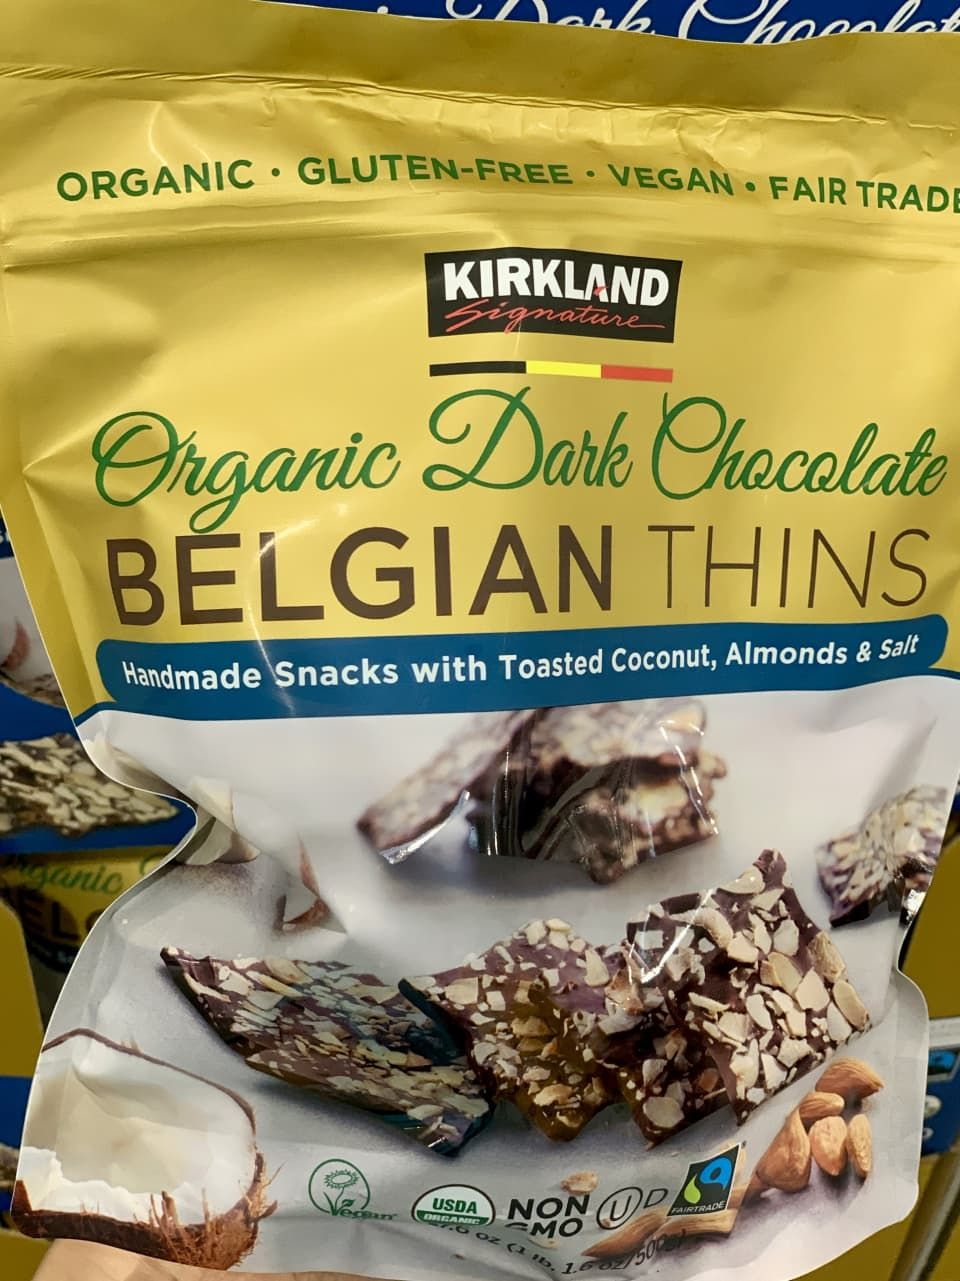 Costco S Top 10 New Kirkland Products Of 2019 So Far Gluten